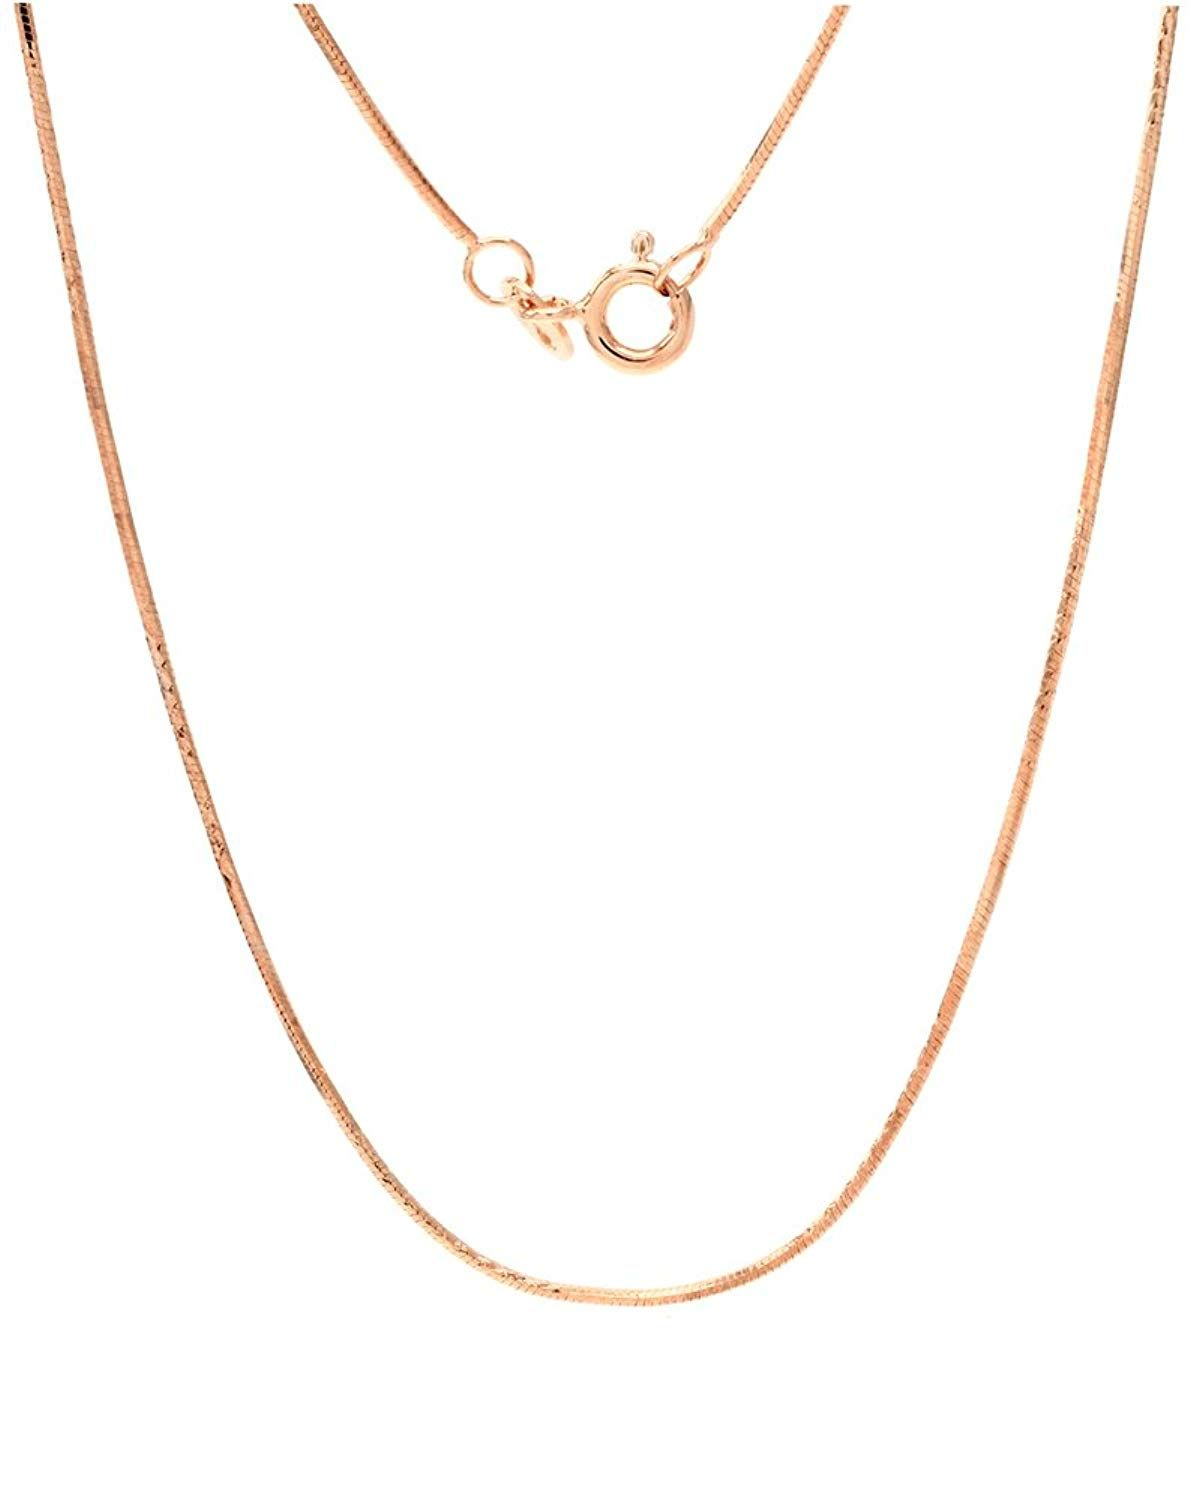 ASHINE 0.8mm Italian Box Chain Necklace 925 Sterling Silver 16-30 with Silver Polishing Cloth